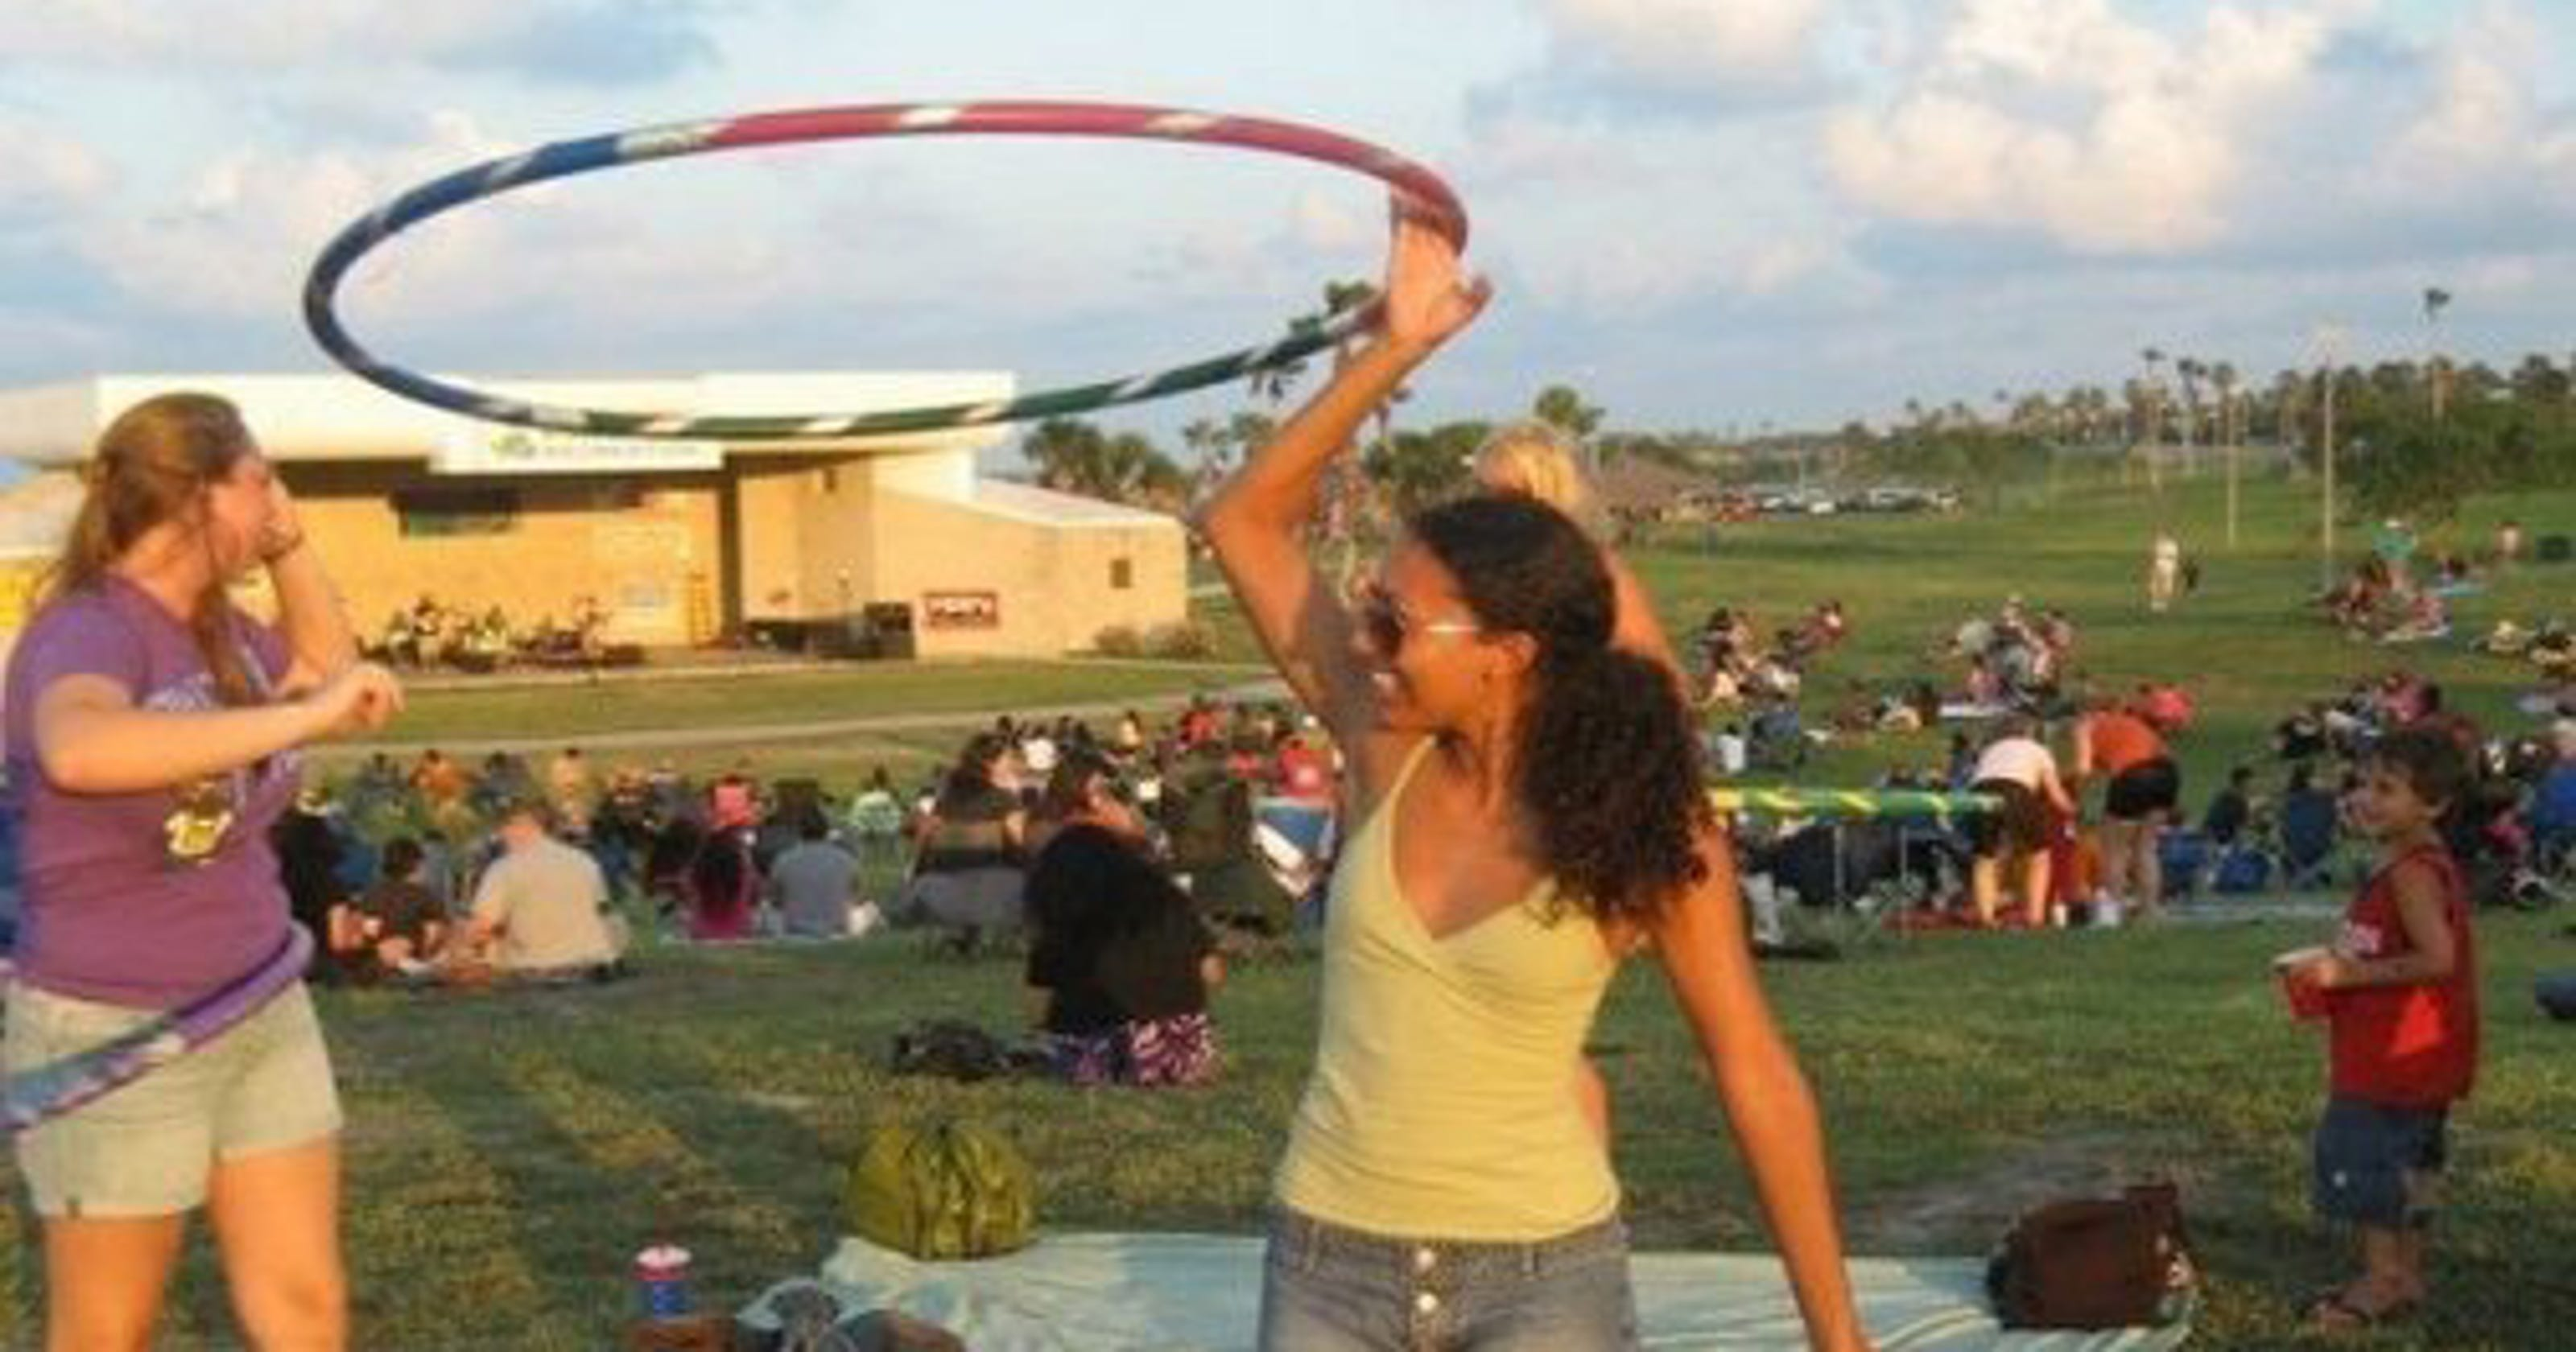 Cathedral concert, movies at Cole Park & Watergardens: Free events ...